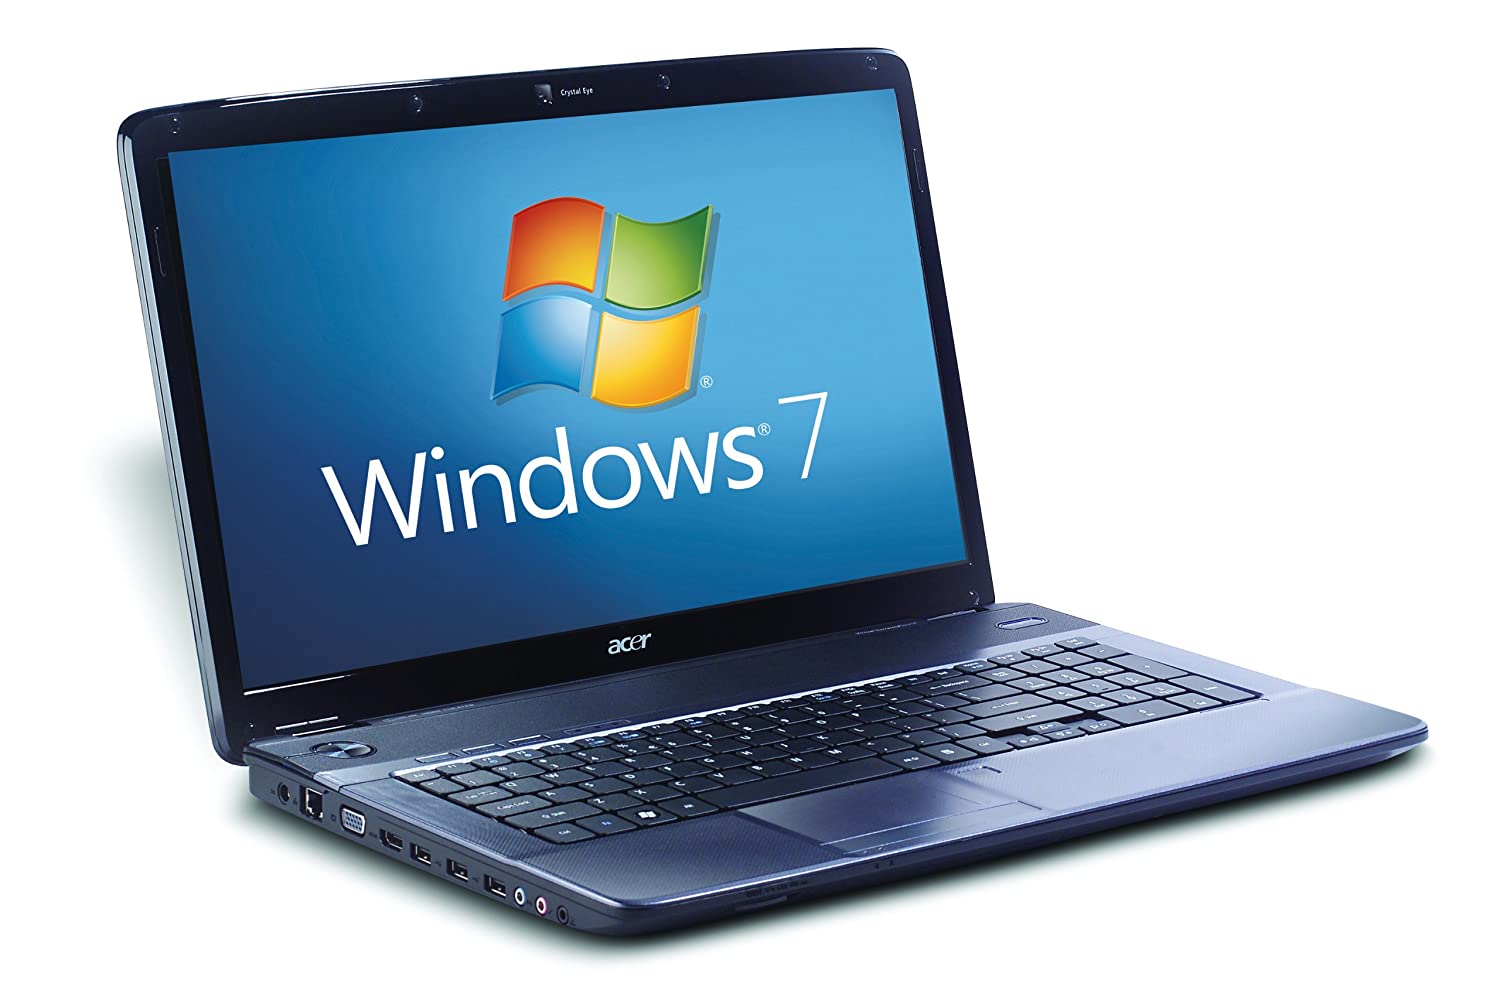 ACER ASPIRE 7736 NOTEBOOK DRIVERS FOR WINDOWS 7